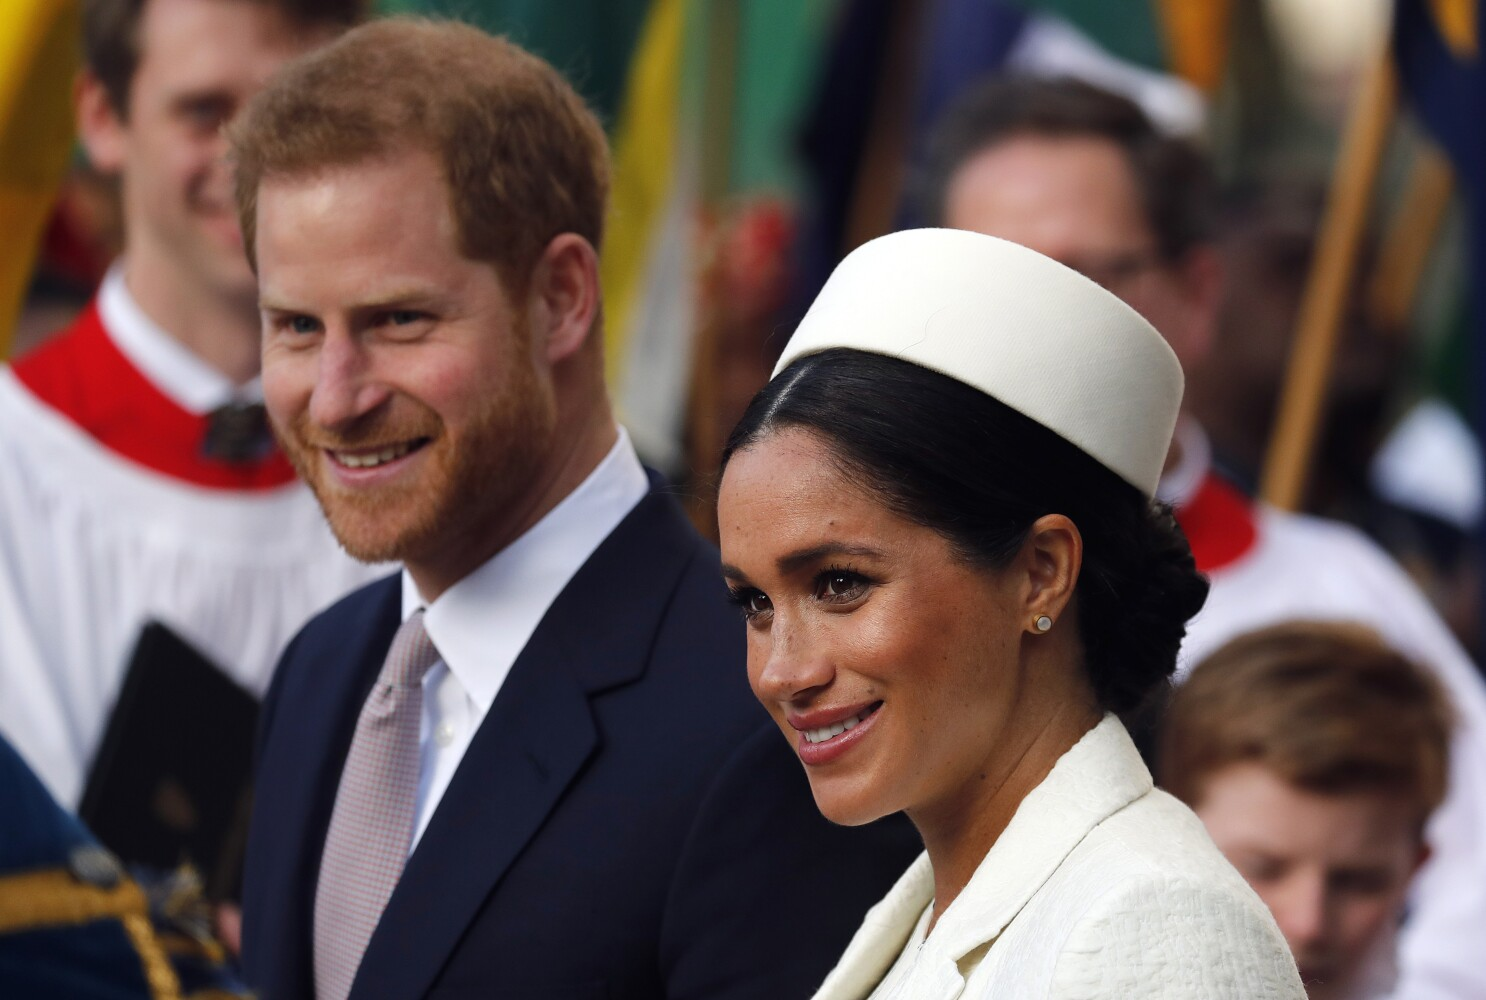 Prince Harry And Meghan Markle To Give Up Royal Highness Titles Los Angeles Times